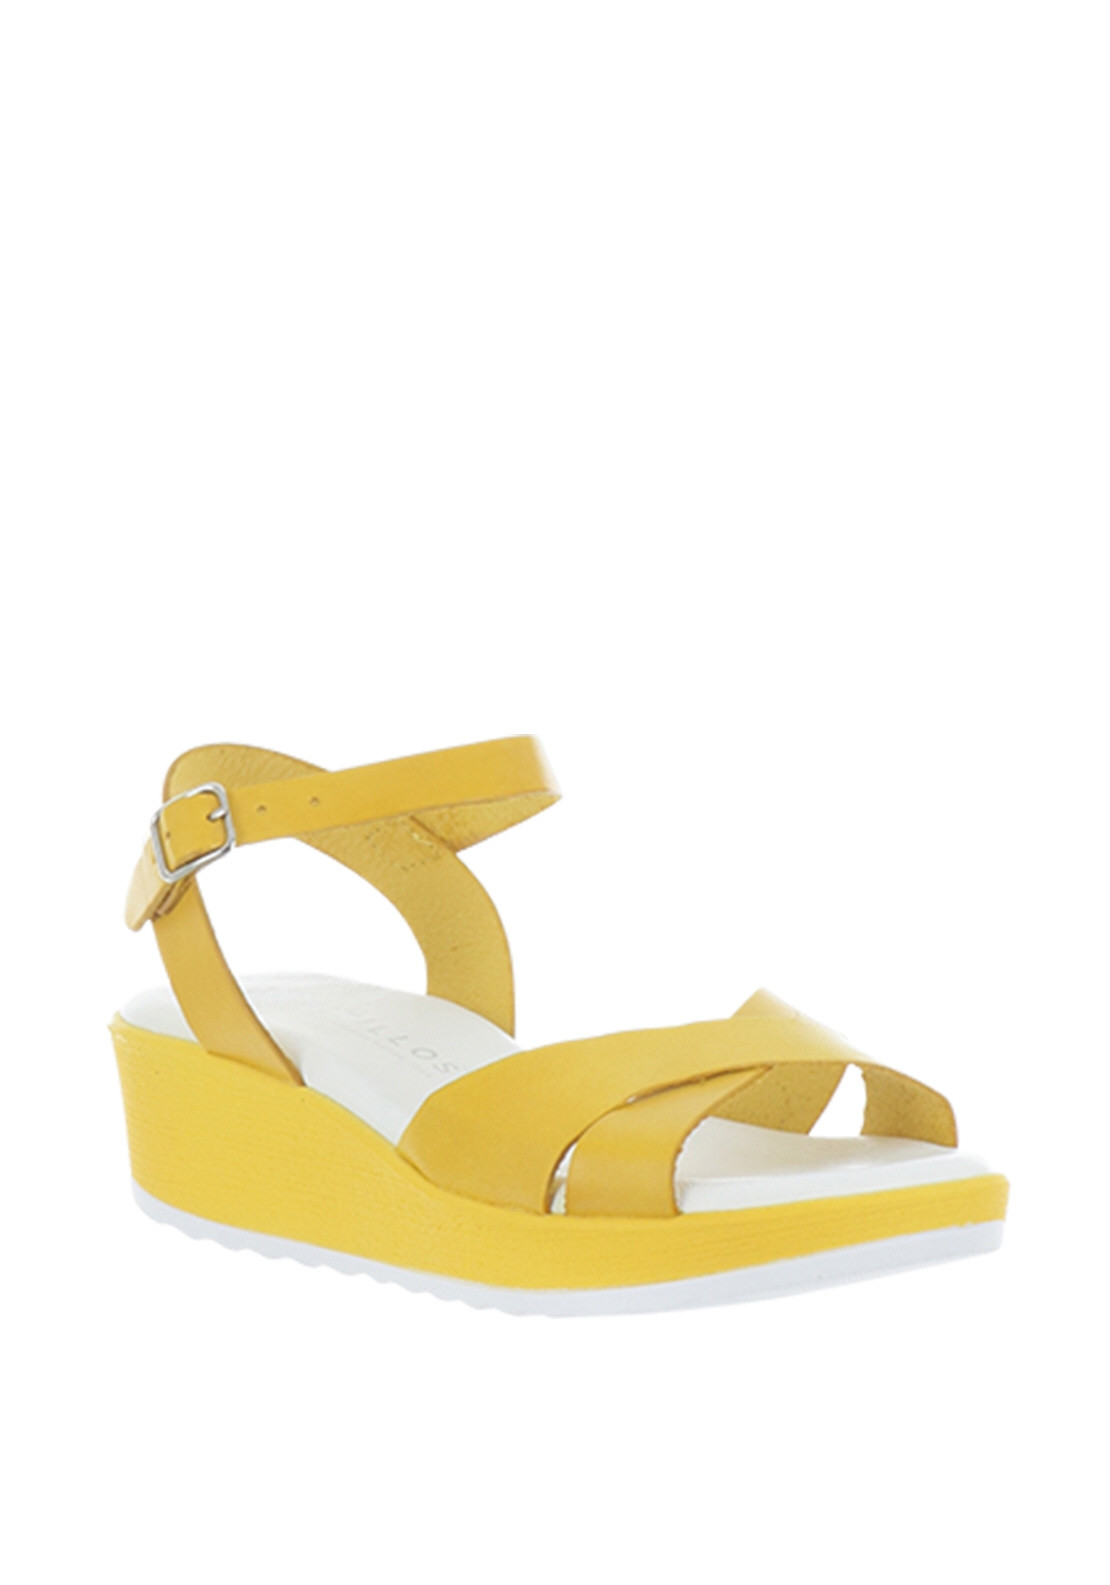 57631a4266 Pitillos Leather Platform Sandals, Yellow. Be the first to review this  product